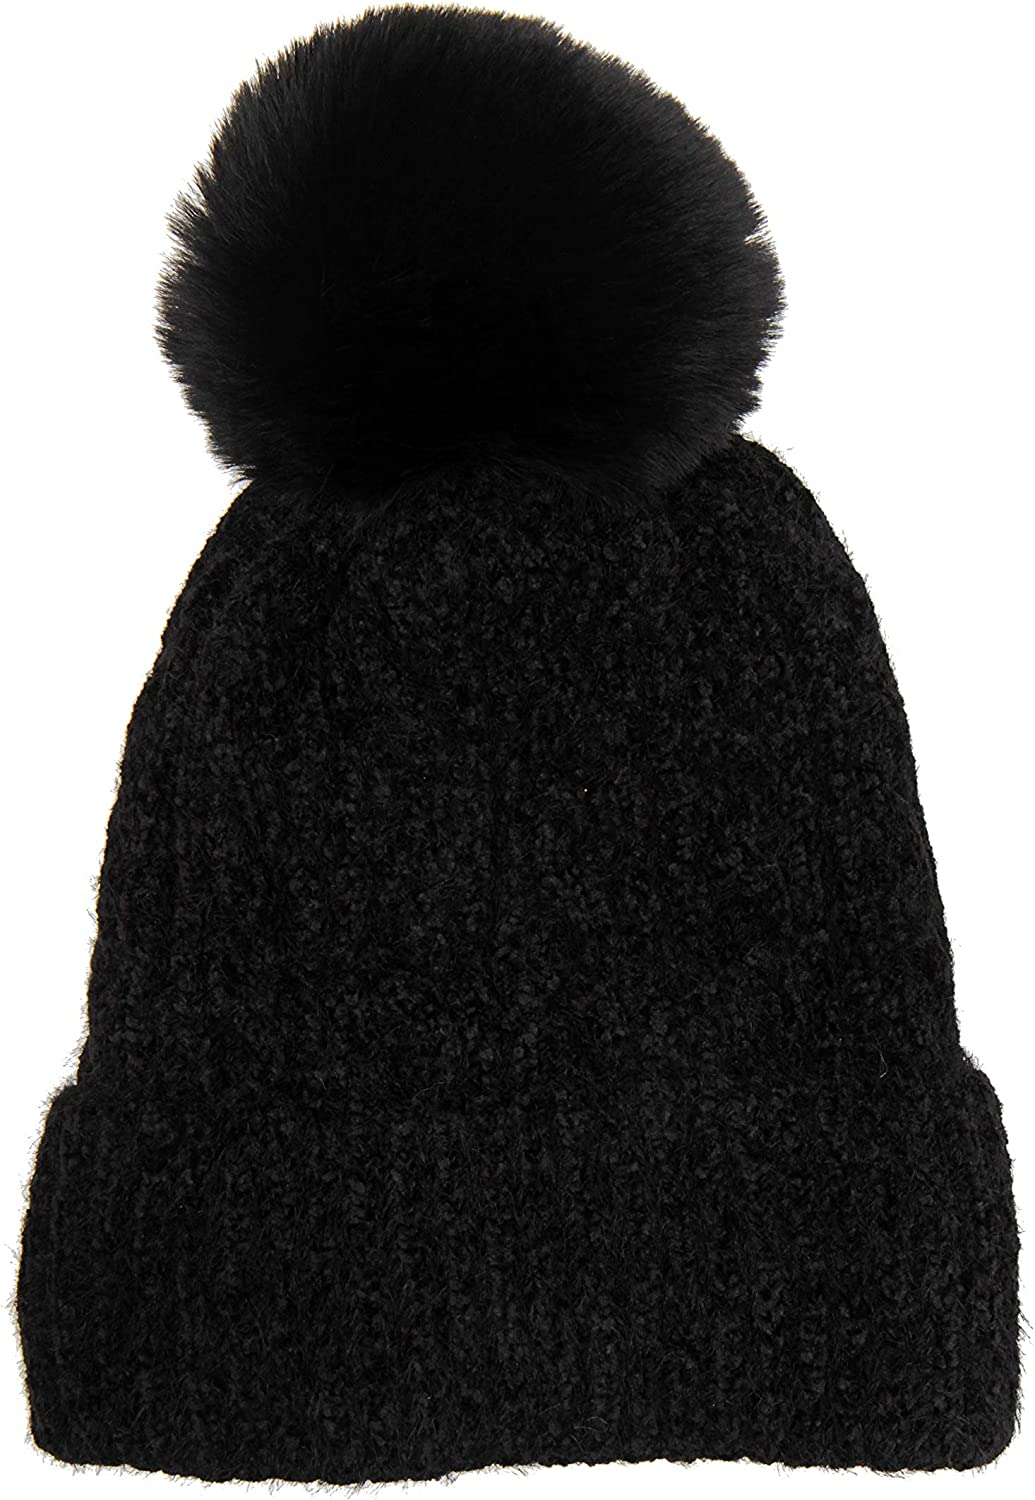 TEXTURE Ladies Womens Lagenlook Winter Cable Knitted Velour Fleece Lined Faux Fur Bobble Pom Pom Beanie Hat